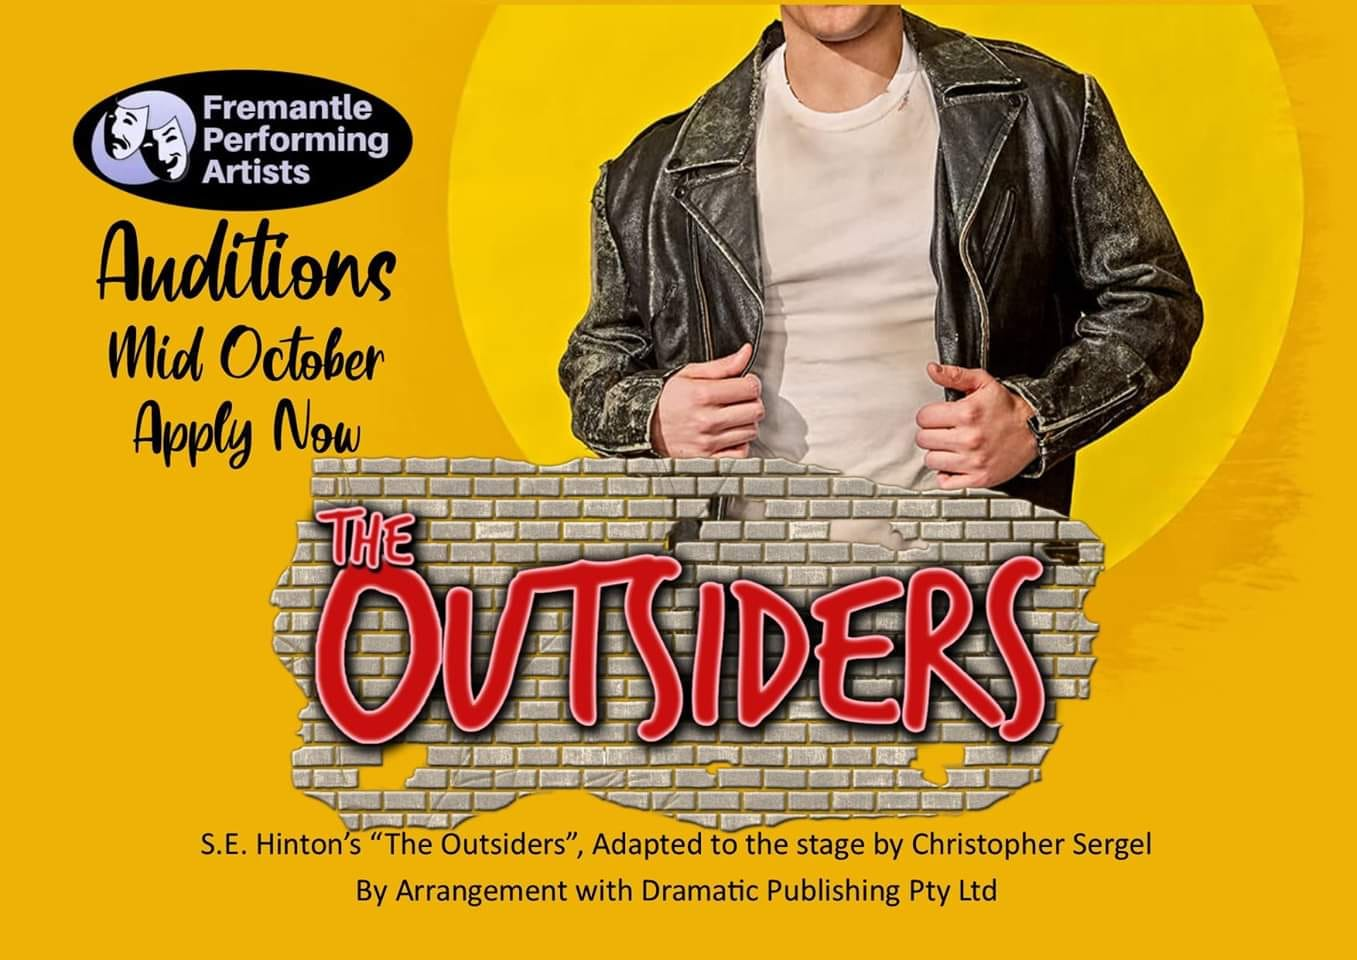 AUDITION: The Outsiders